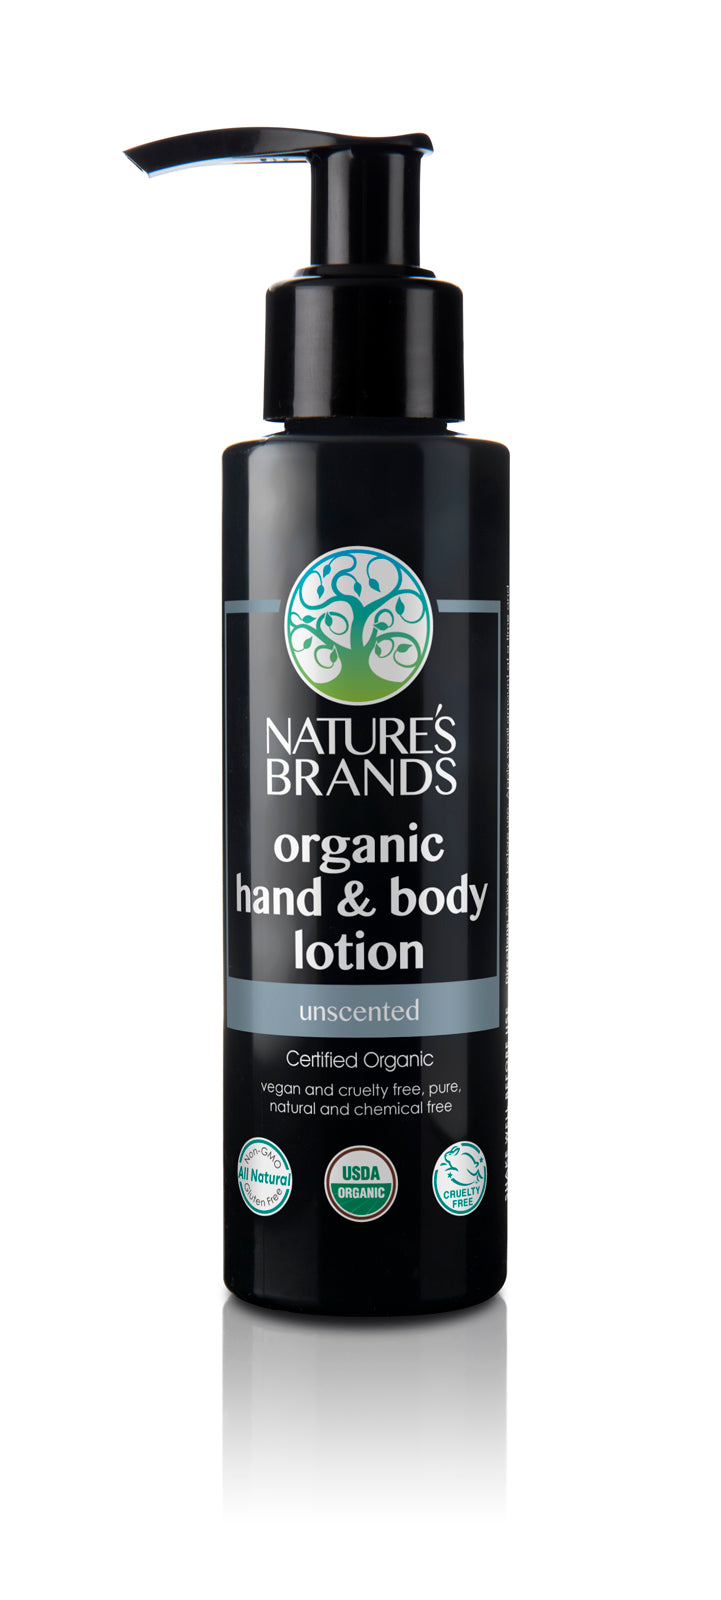 Herbal Choice Mari Organic Hand And Body Lotion, Unscented - Herbal Choice Mari Organic Hand And Body Lotion, Unscented - Herbal Choice Mari Organic Hand And Body Lotion, Unscented